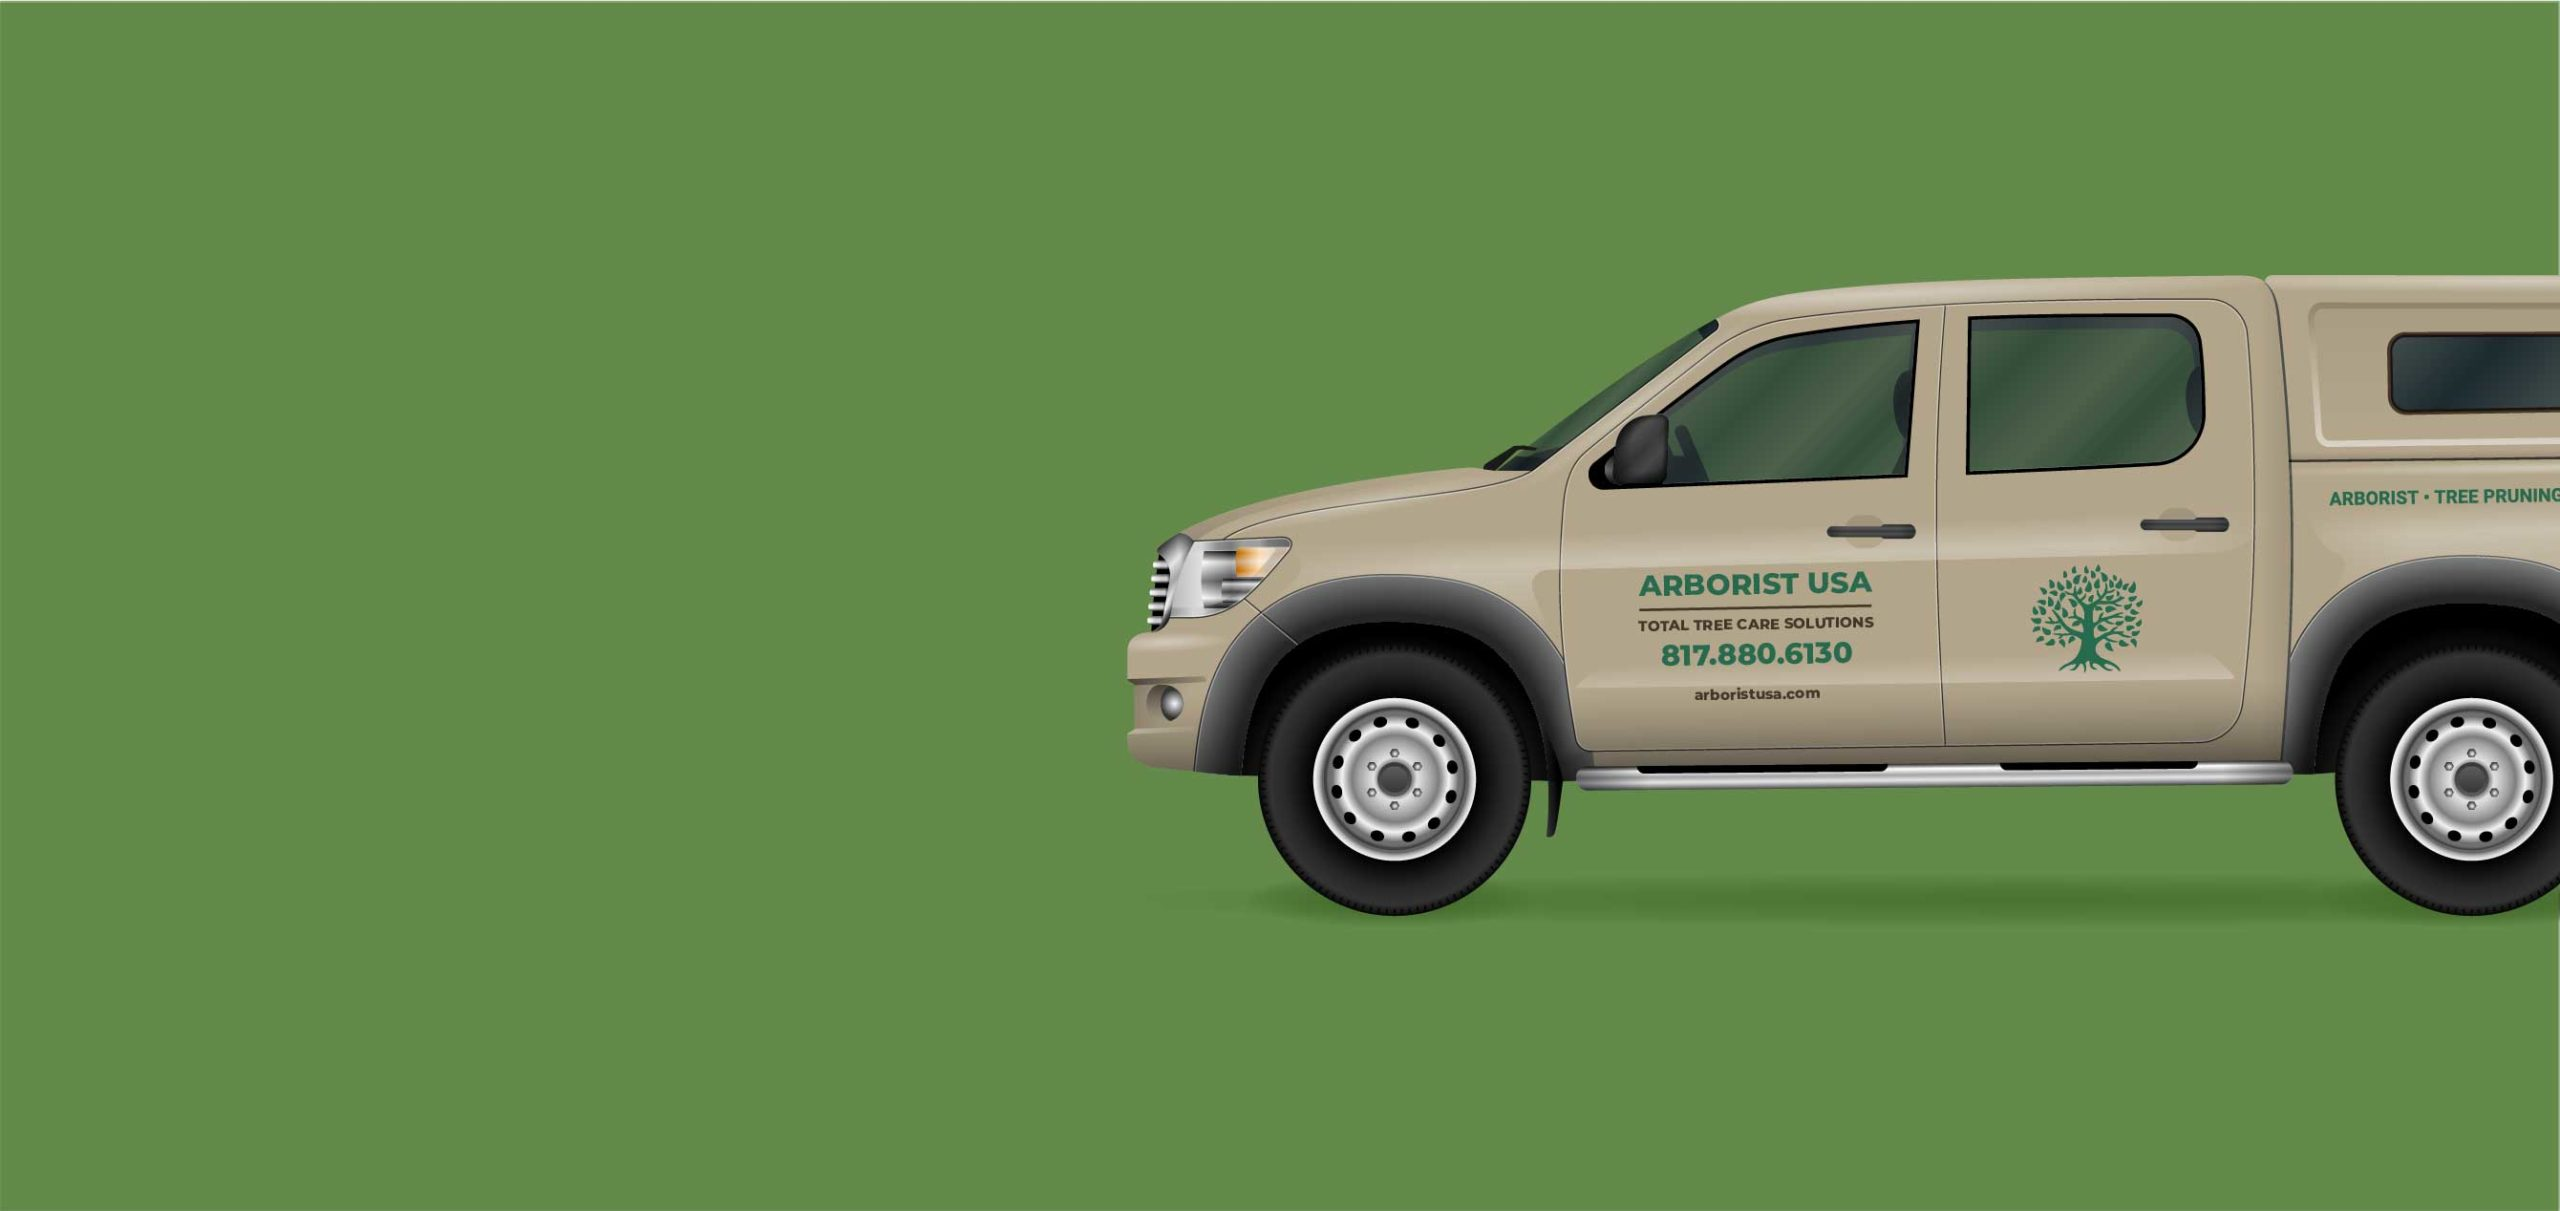 We Offer Certified Arborist & Tree Service in the Dallas-Fort Worth Metroplex.